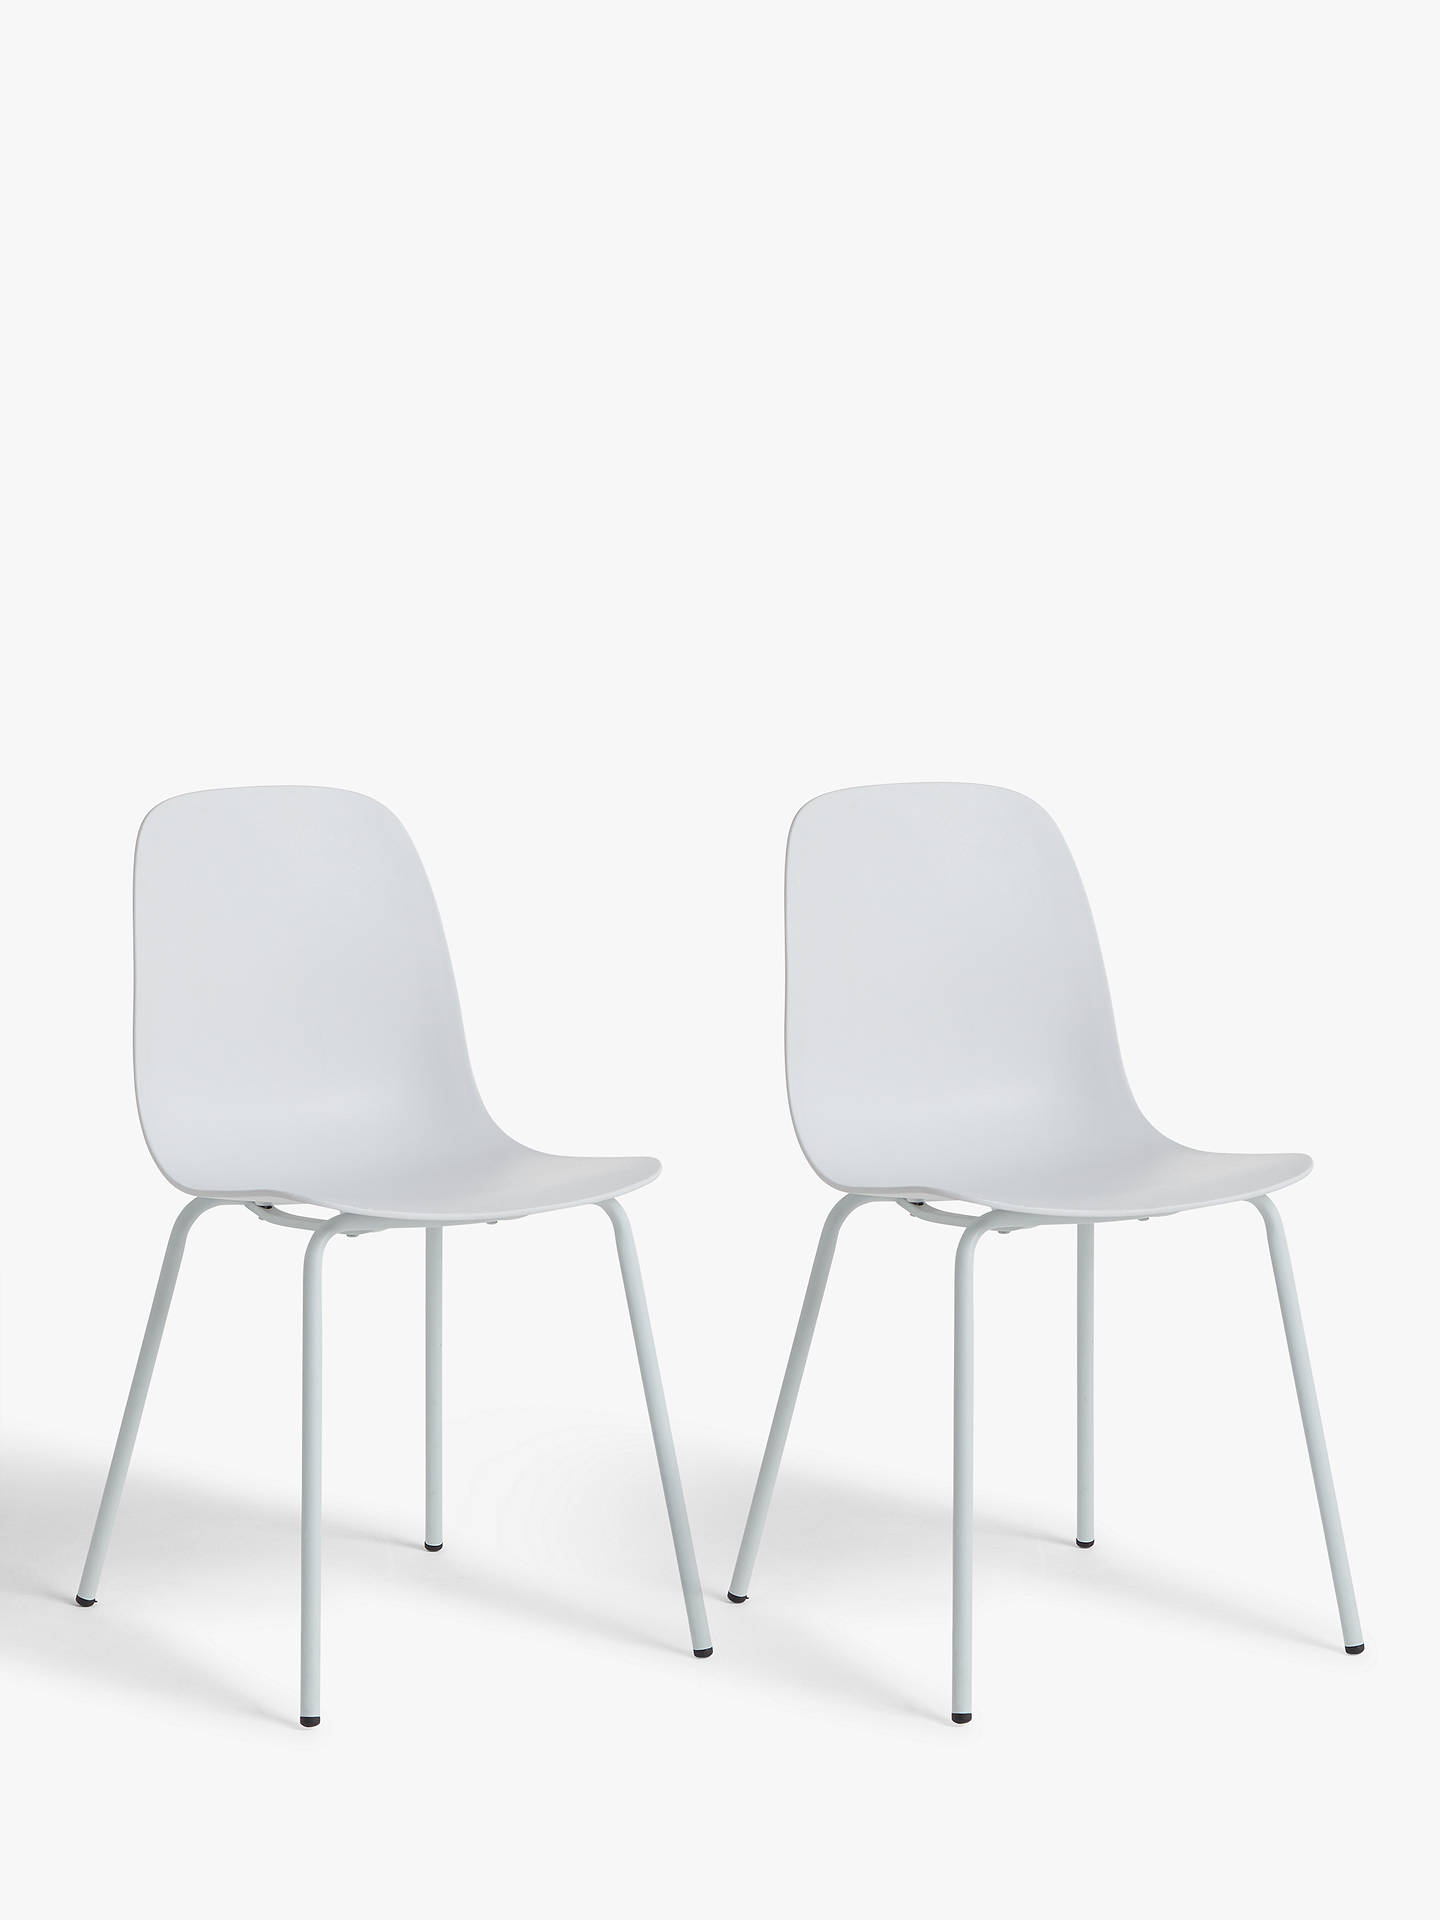 Fine House By John Lewis Whitby Dining Chairs Set Of 2 White Caraccident5 Cool Chair Designs And Ideas Caraccident5Info